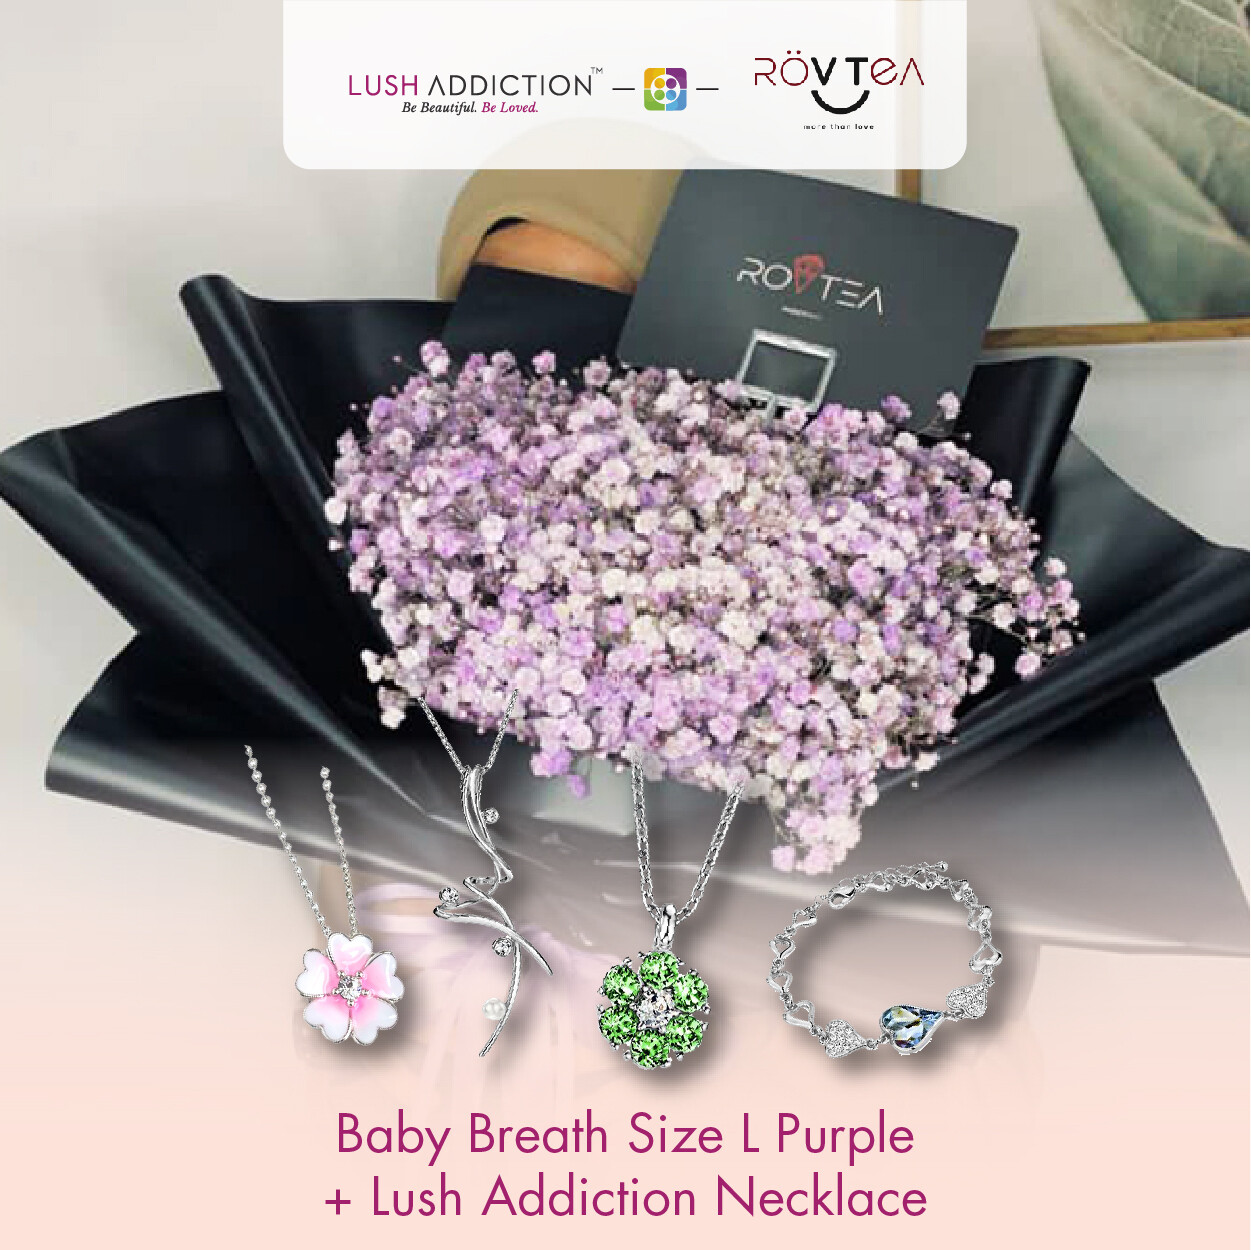 Baby Breath Size L Purple  + Lush Addiction Necklace (By: Rovtea Empire from Ampang)